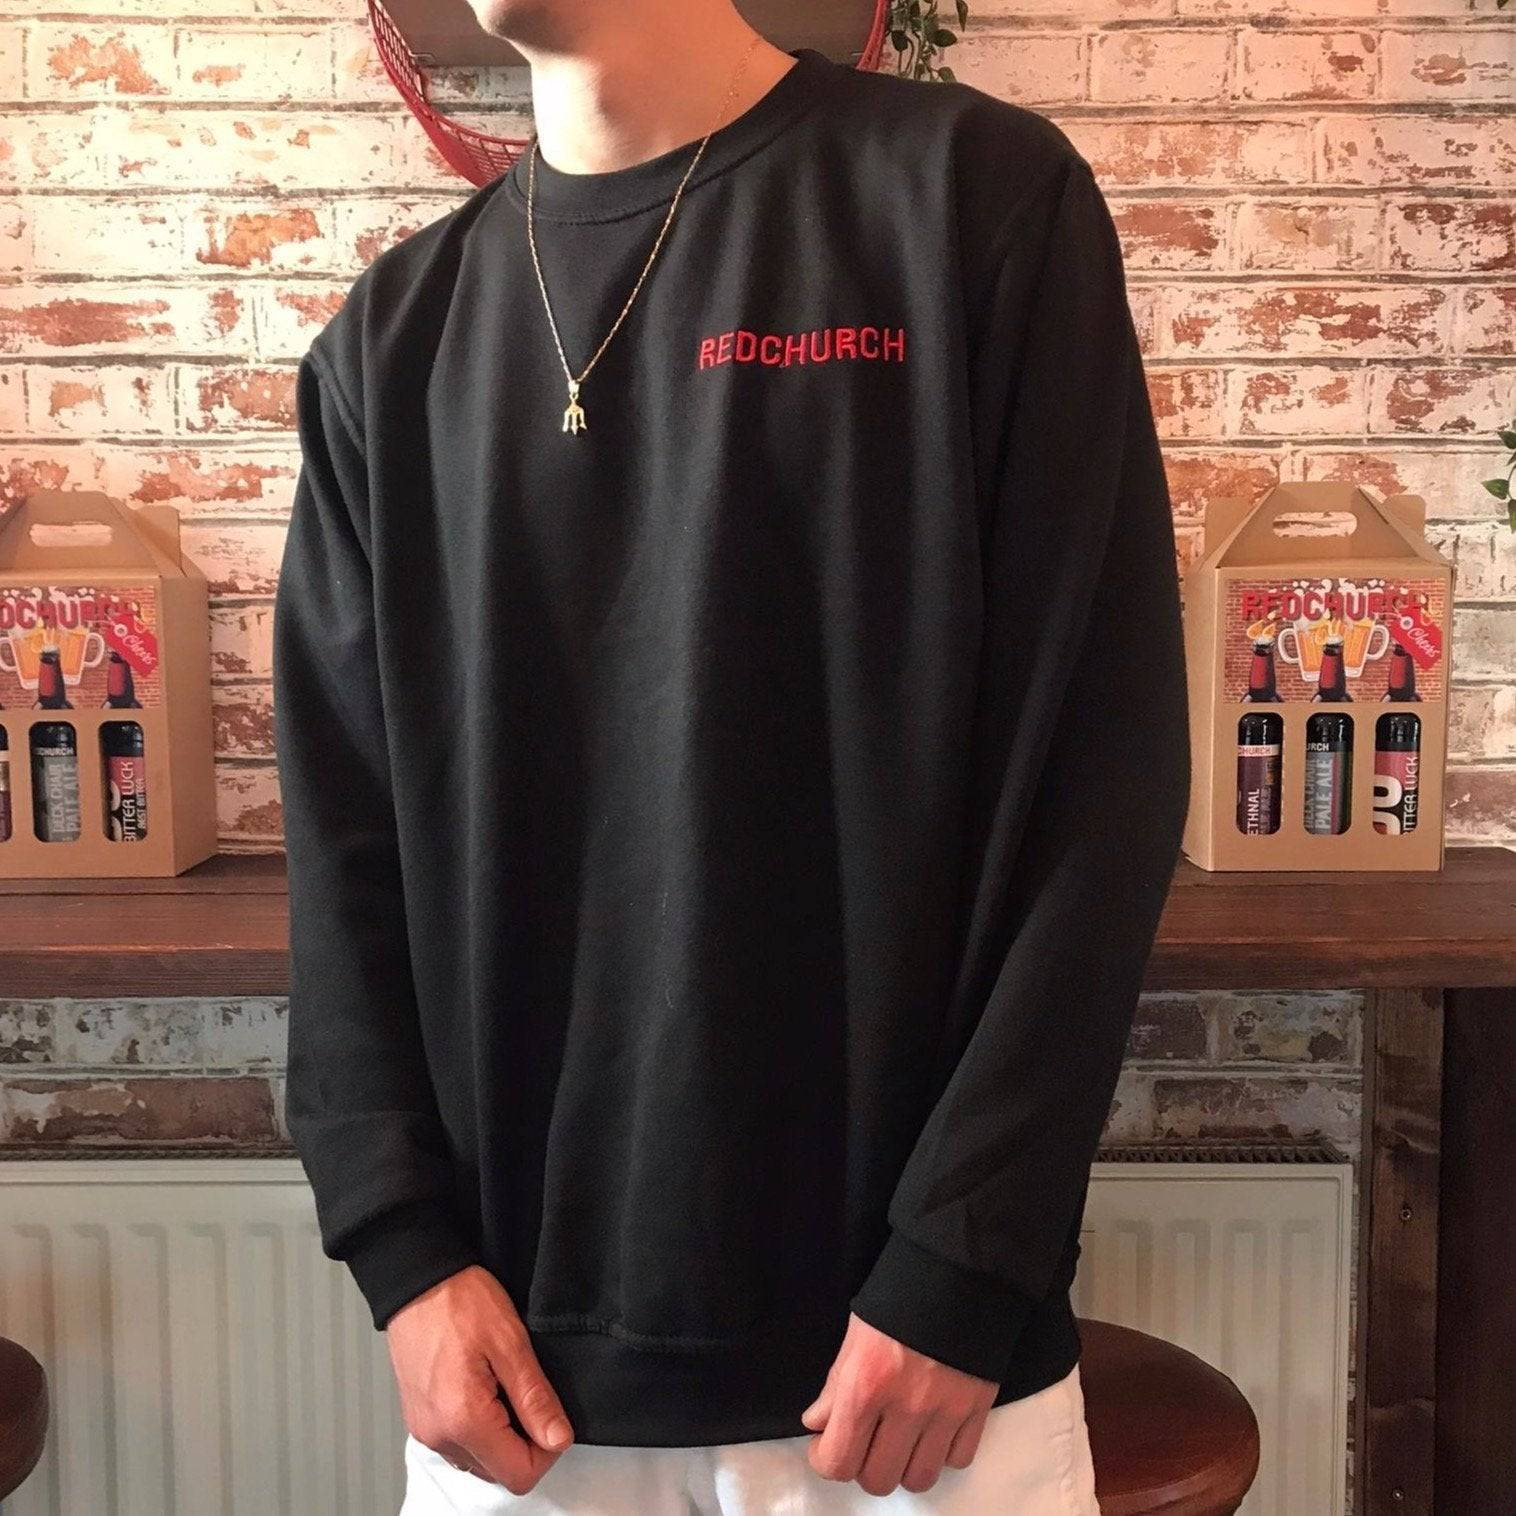 Redchurch Brewery Redchurch Embroidered Sweat Shirt - Large  42-44